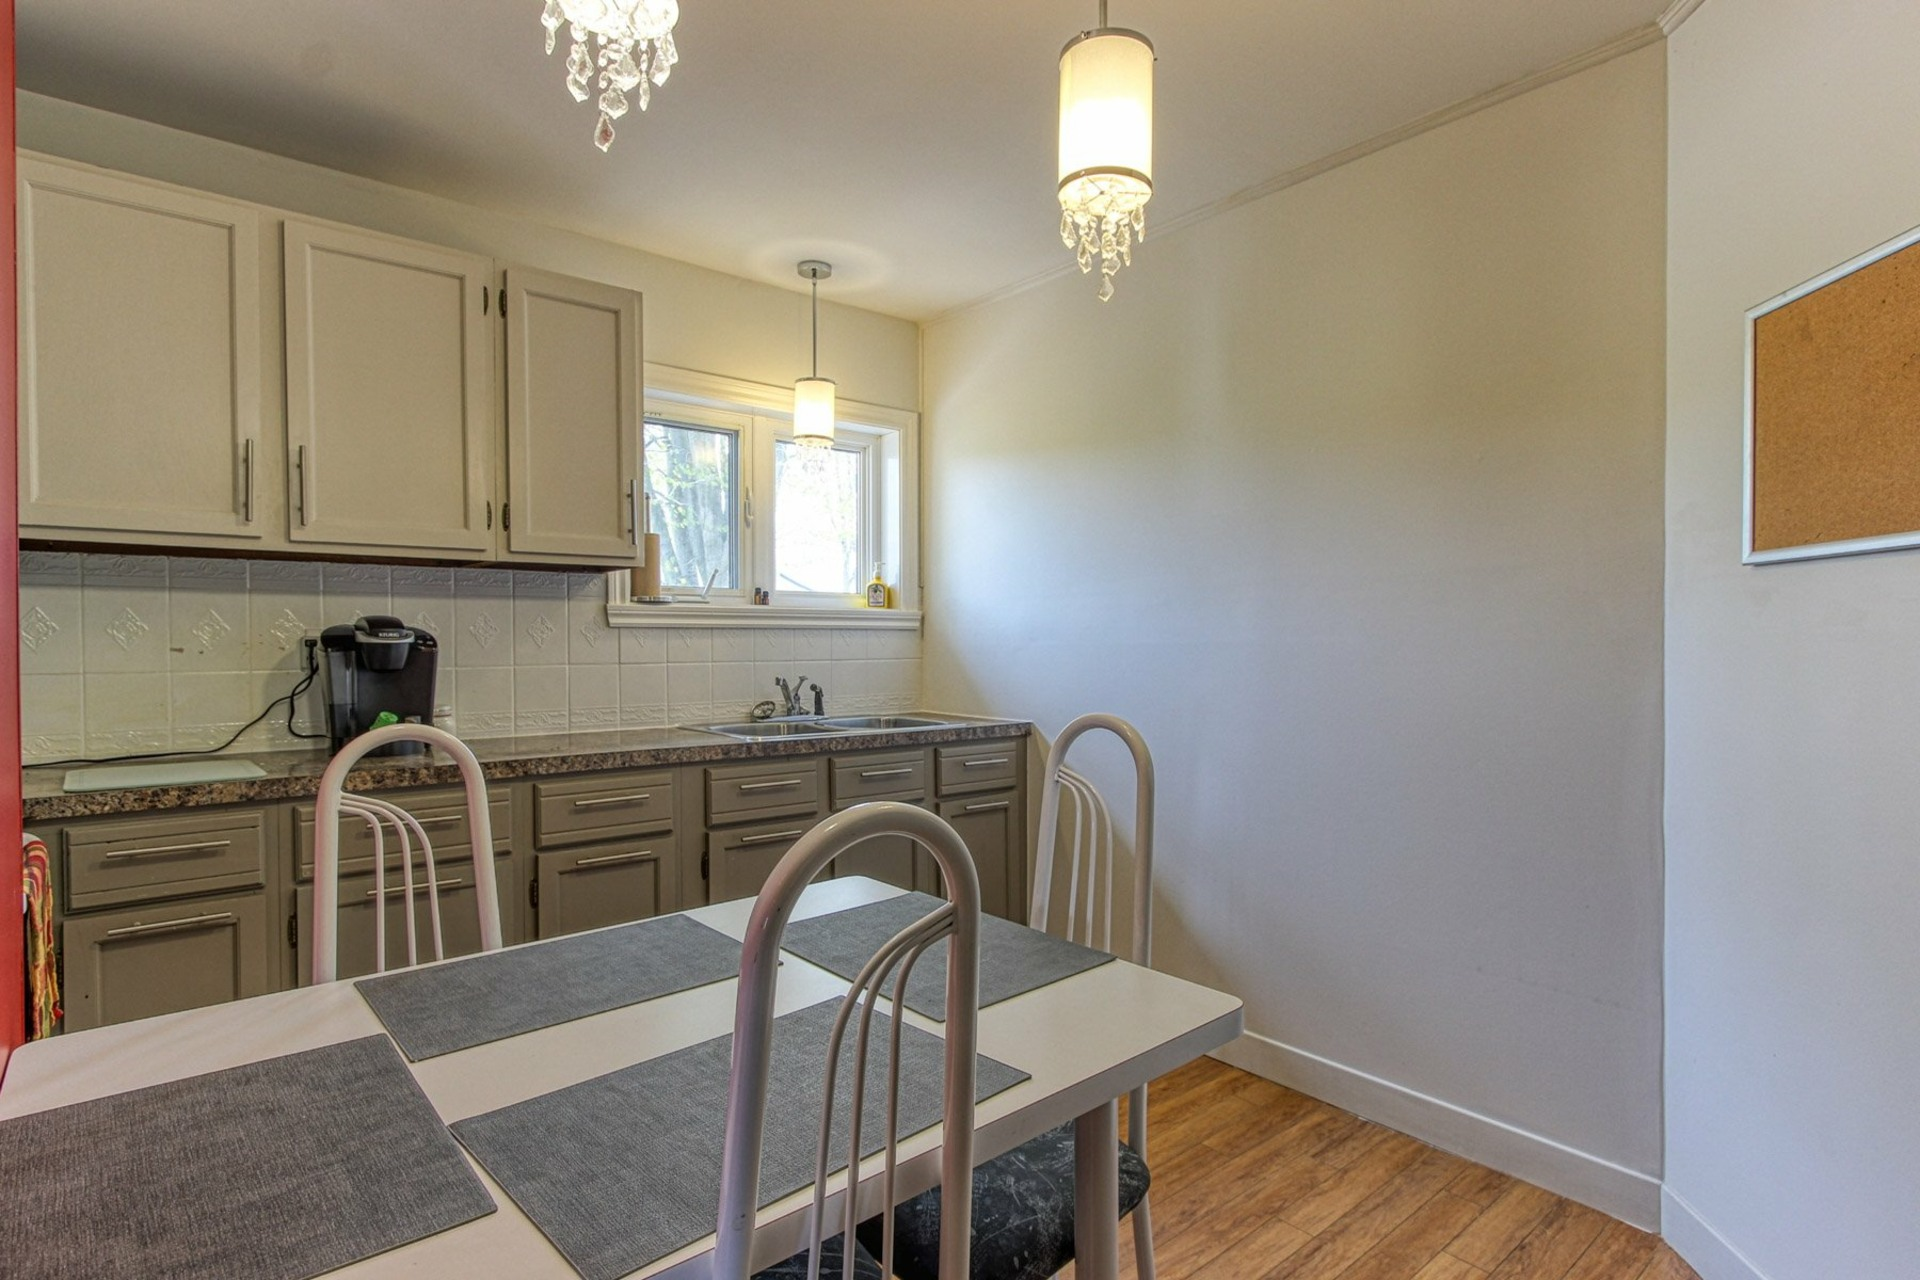 image 7 - House For sale Bécancour - 8 rooms